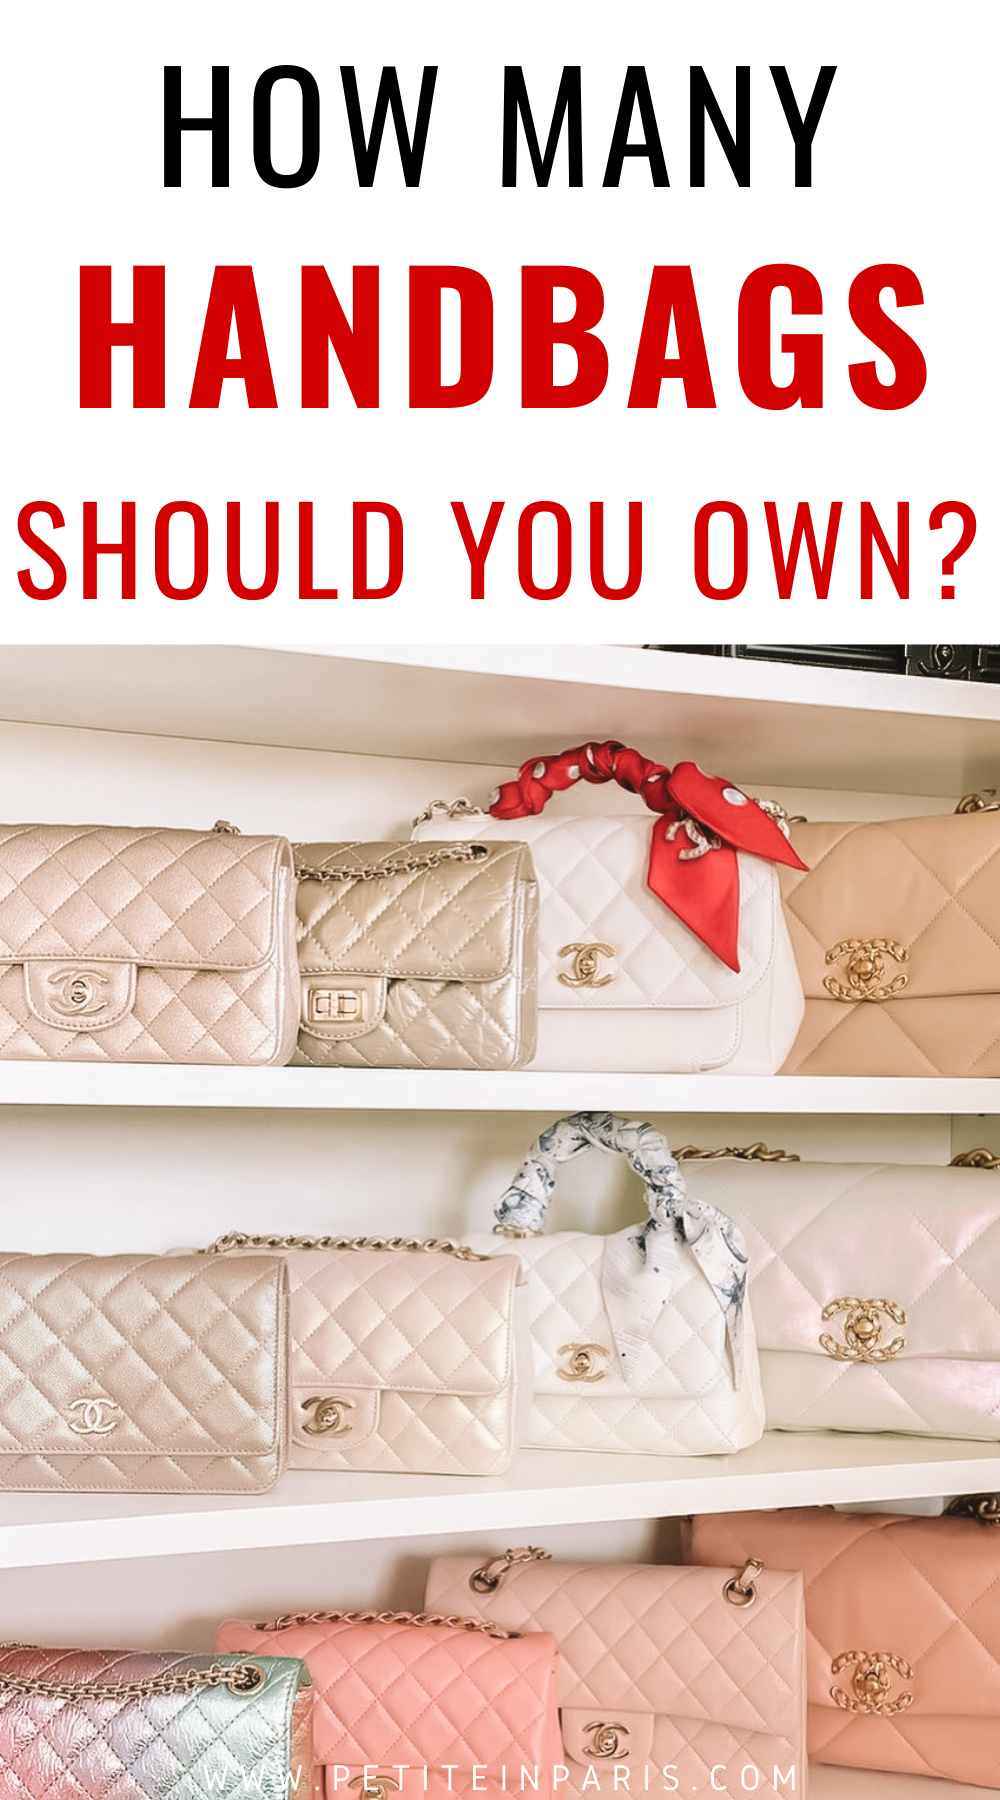 How Many handbags should you own?